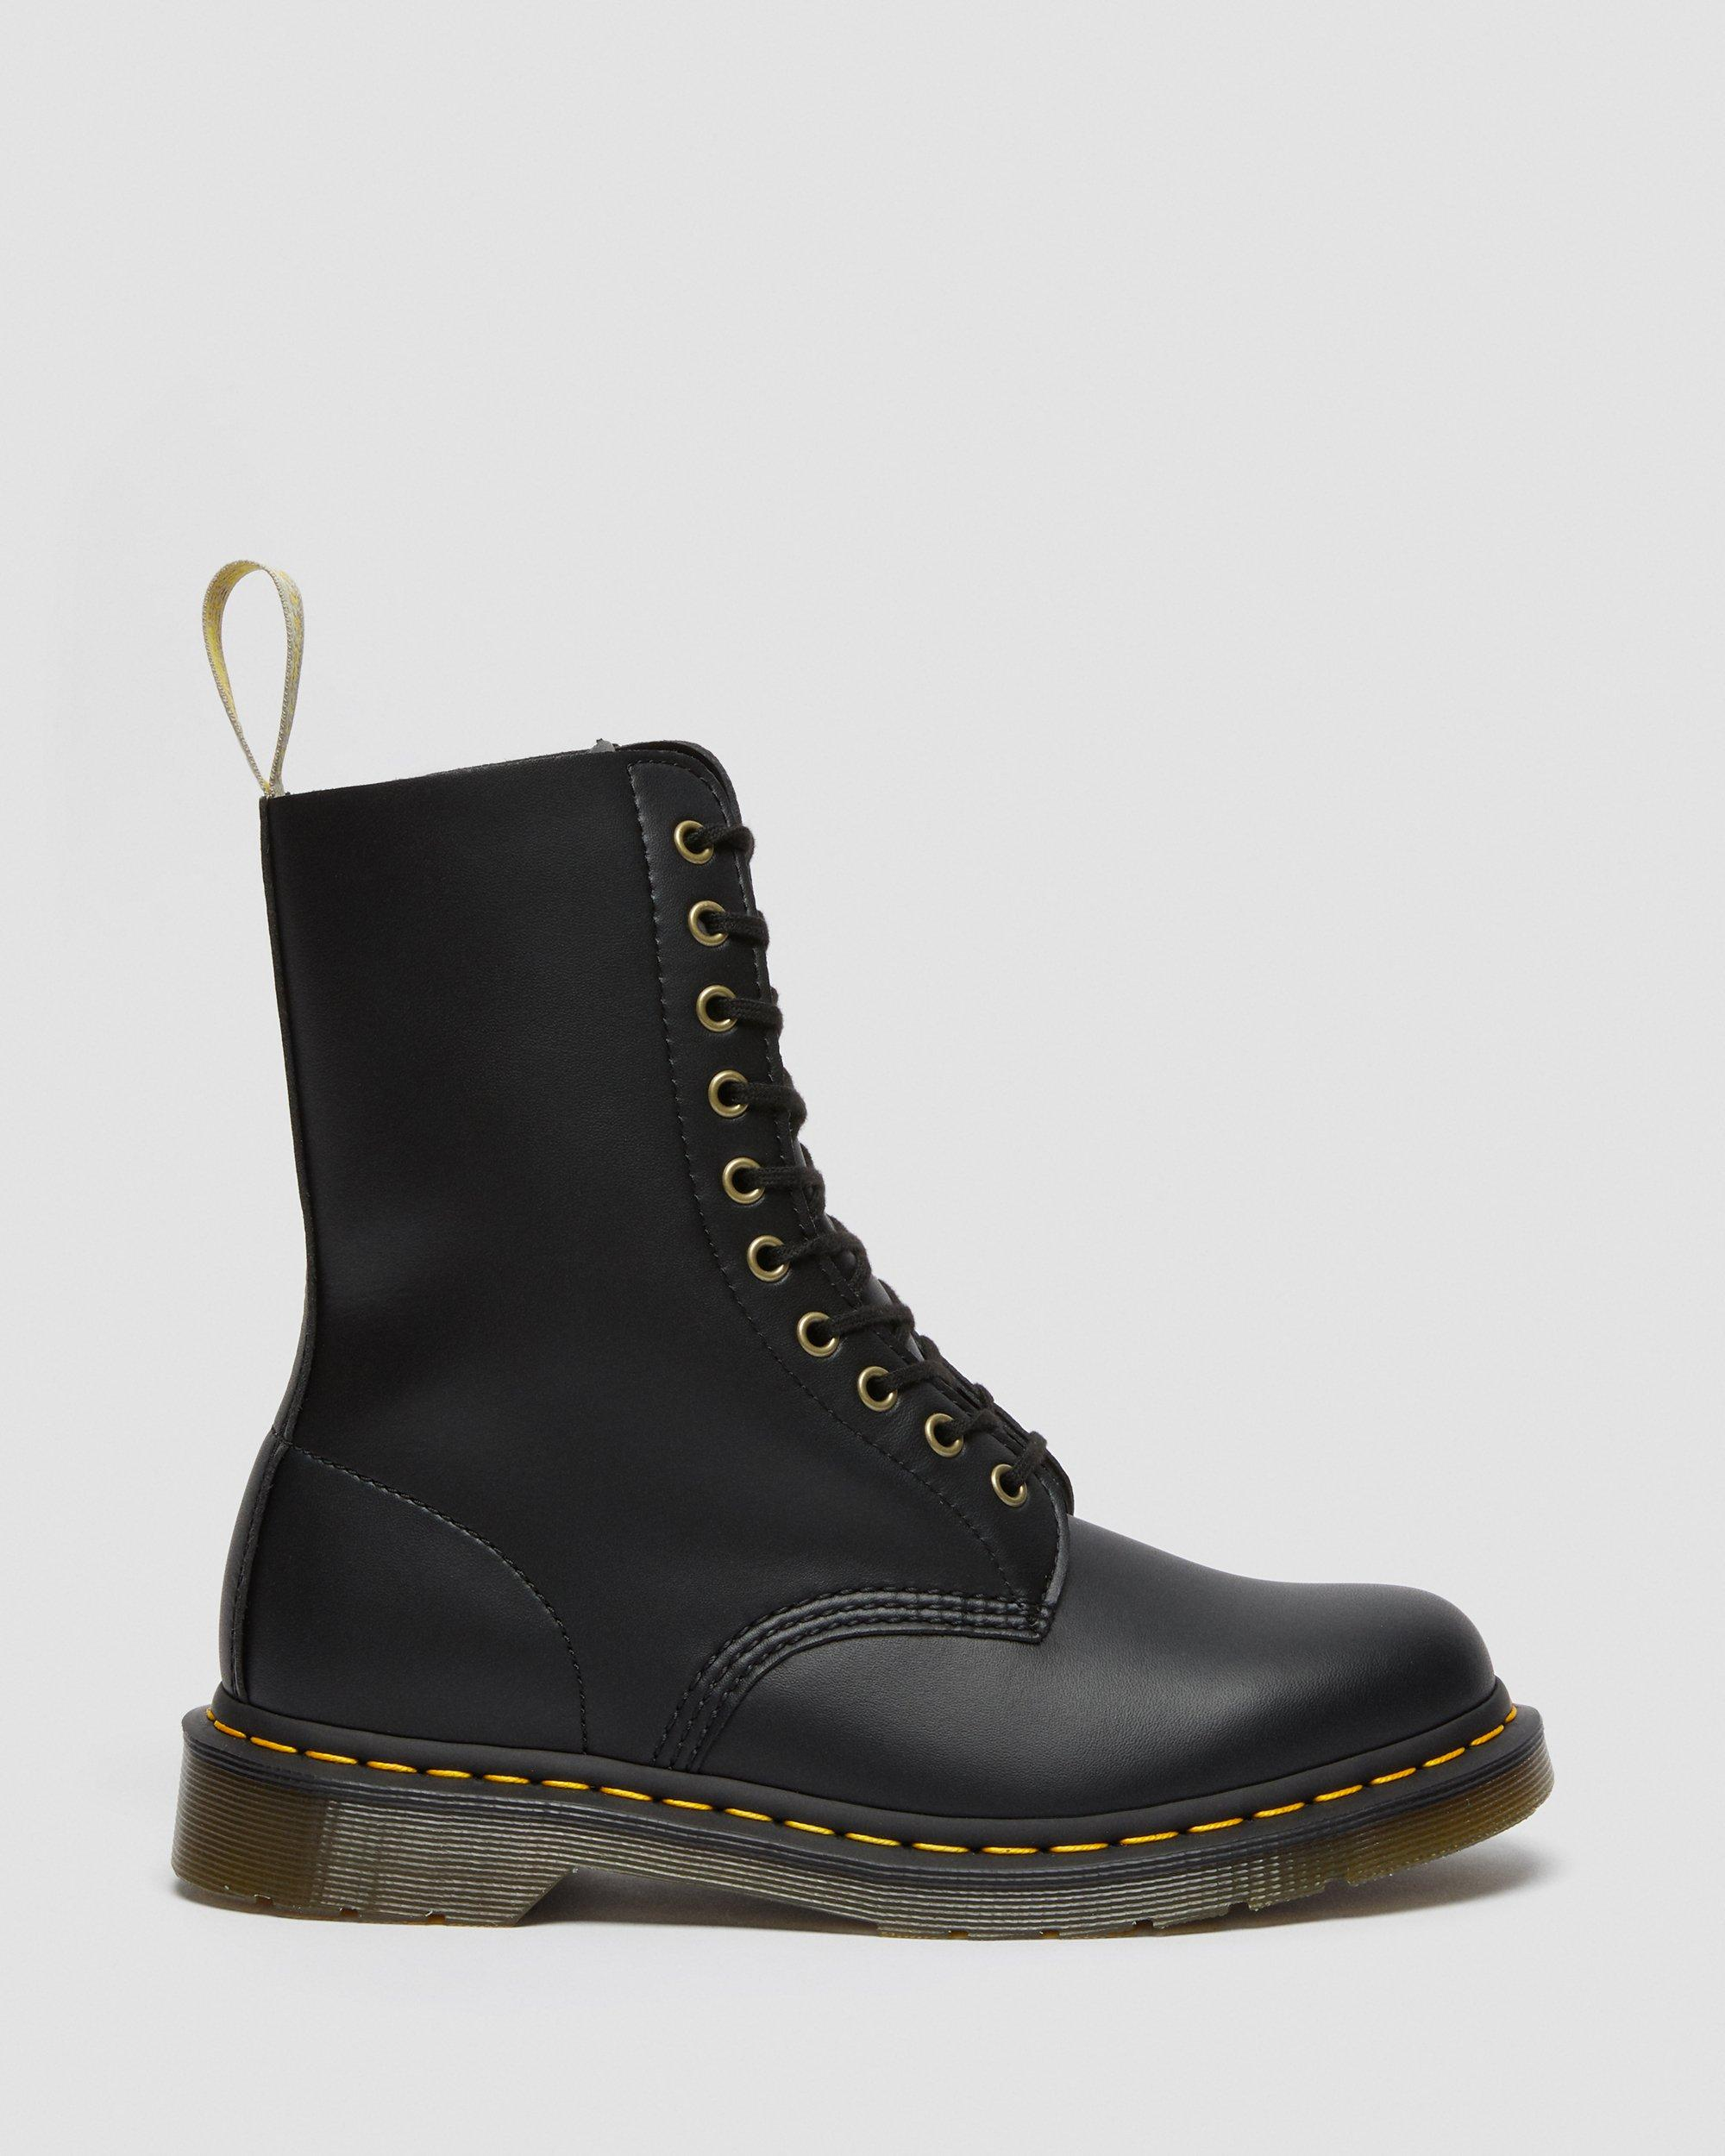 Dr Martens 1490 Vegan Felix Rub Off Black 23981001 Fashion